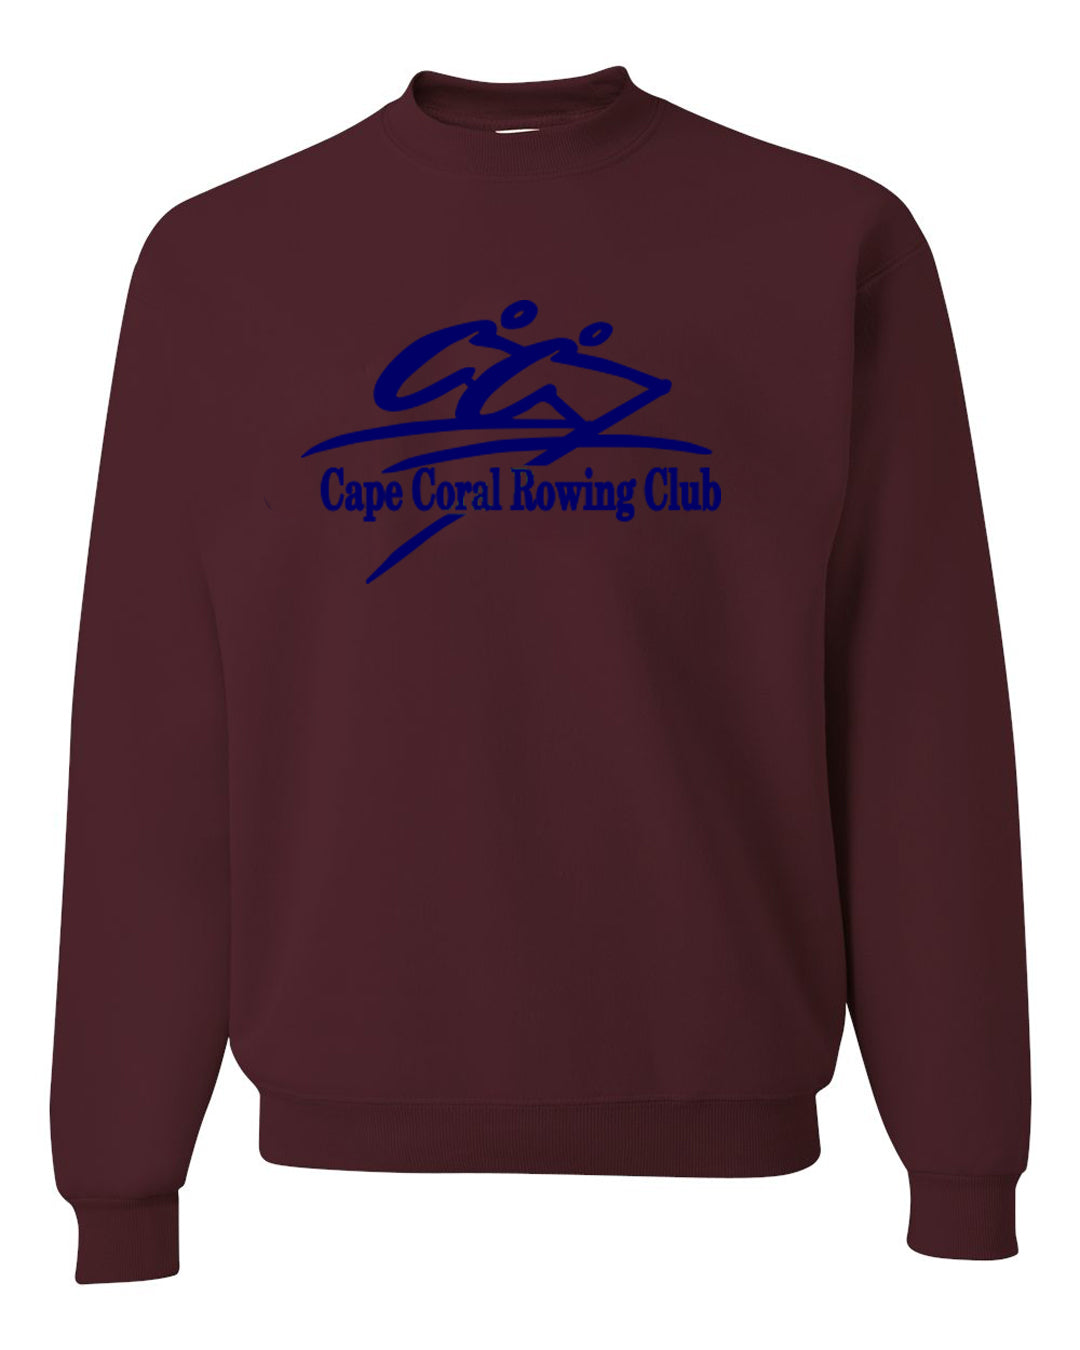 Caloosa Coast Rowing Club Crewneck Sweatshirt